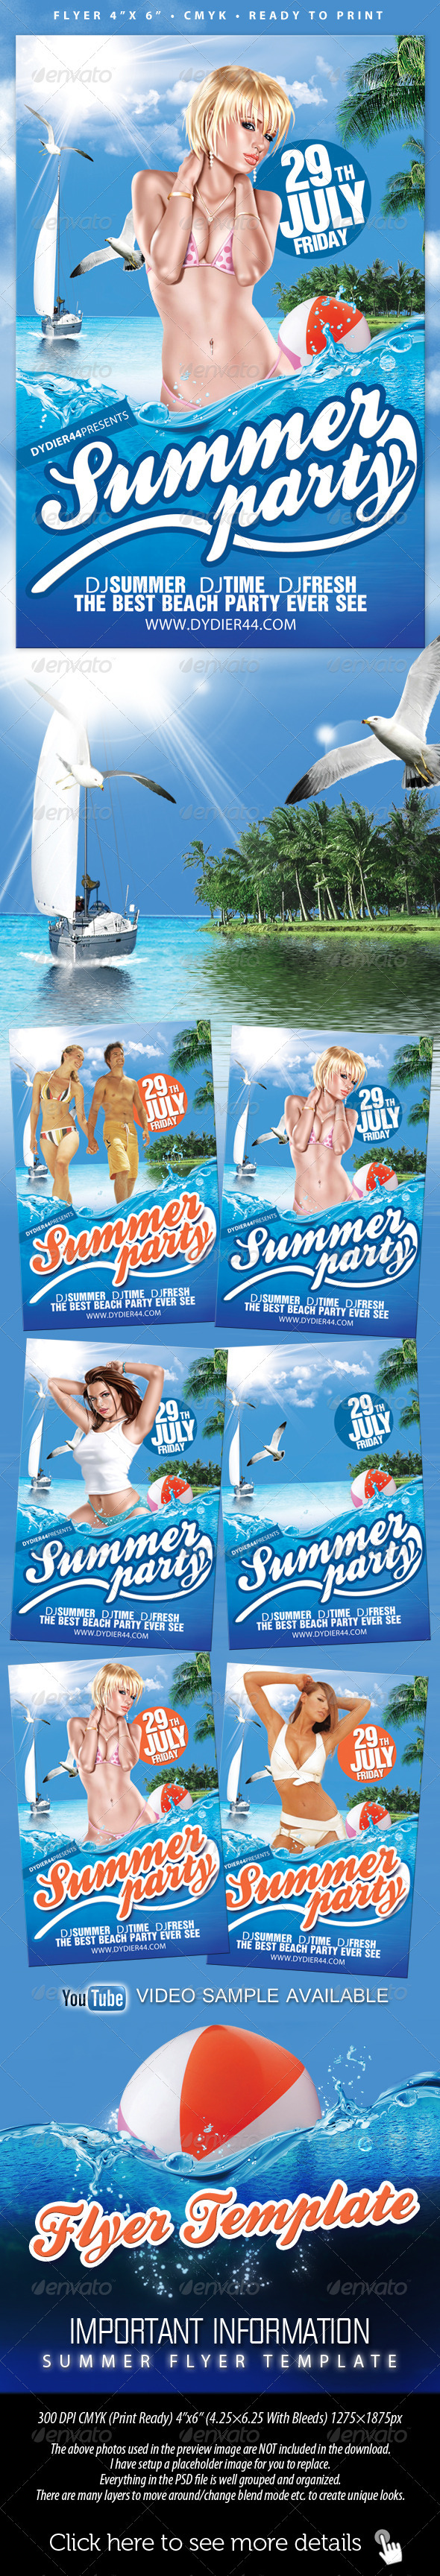 Summer Party (Flyer Template 4x6) - Clubs & Parties Events